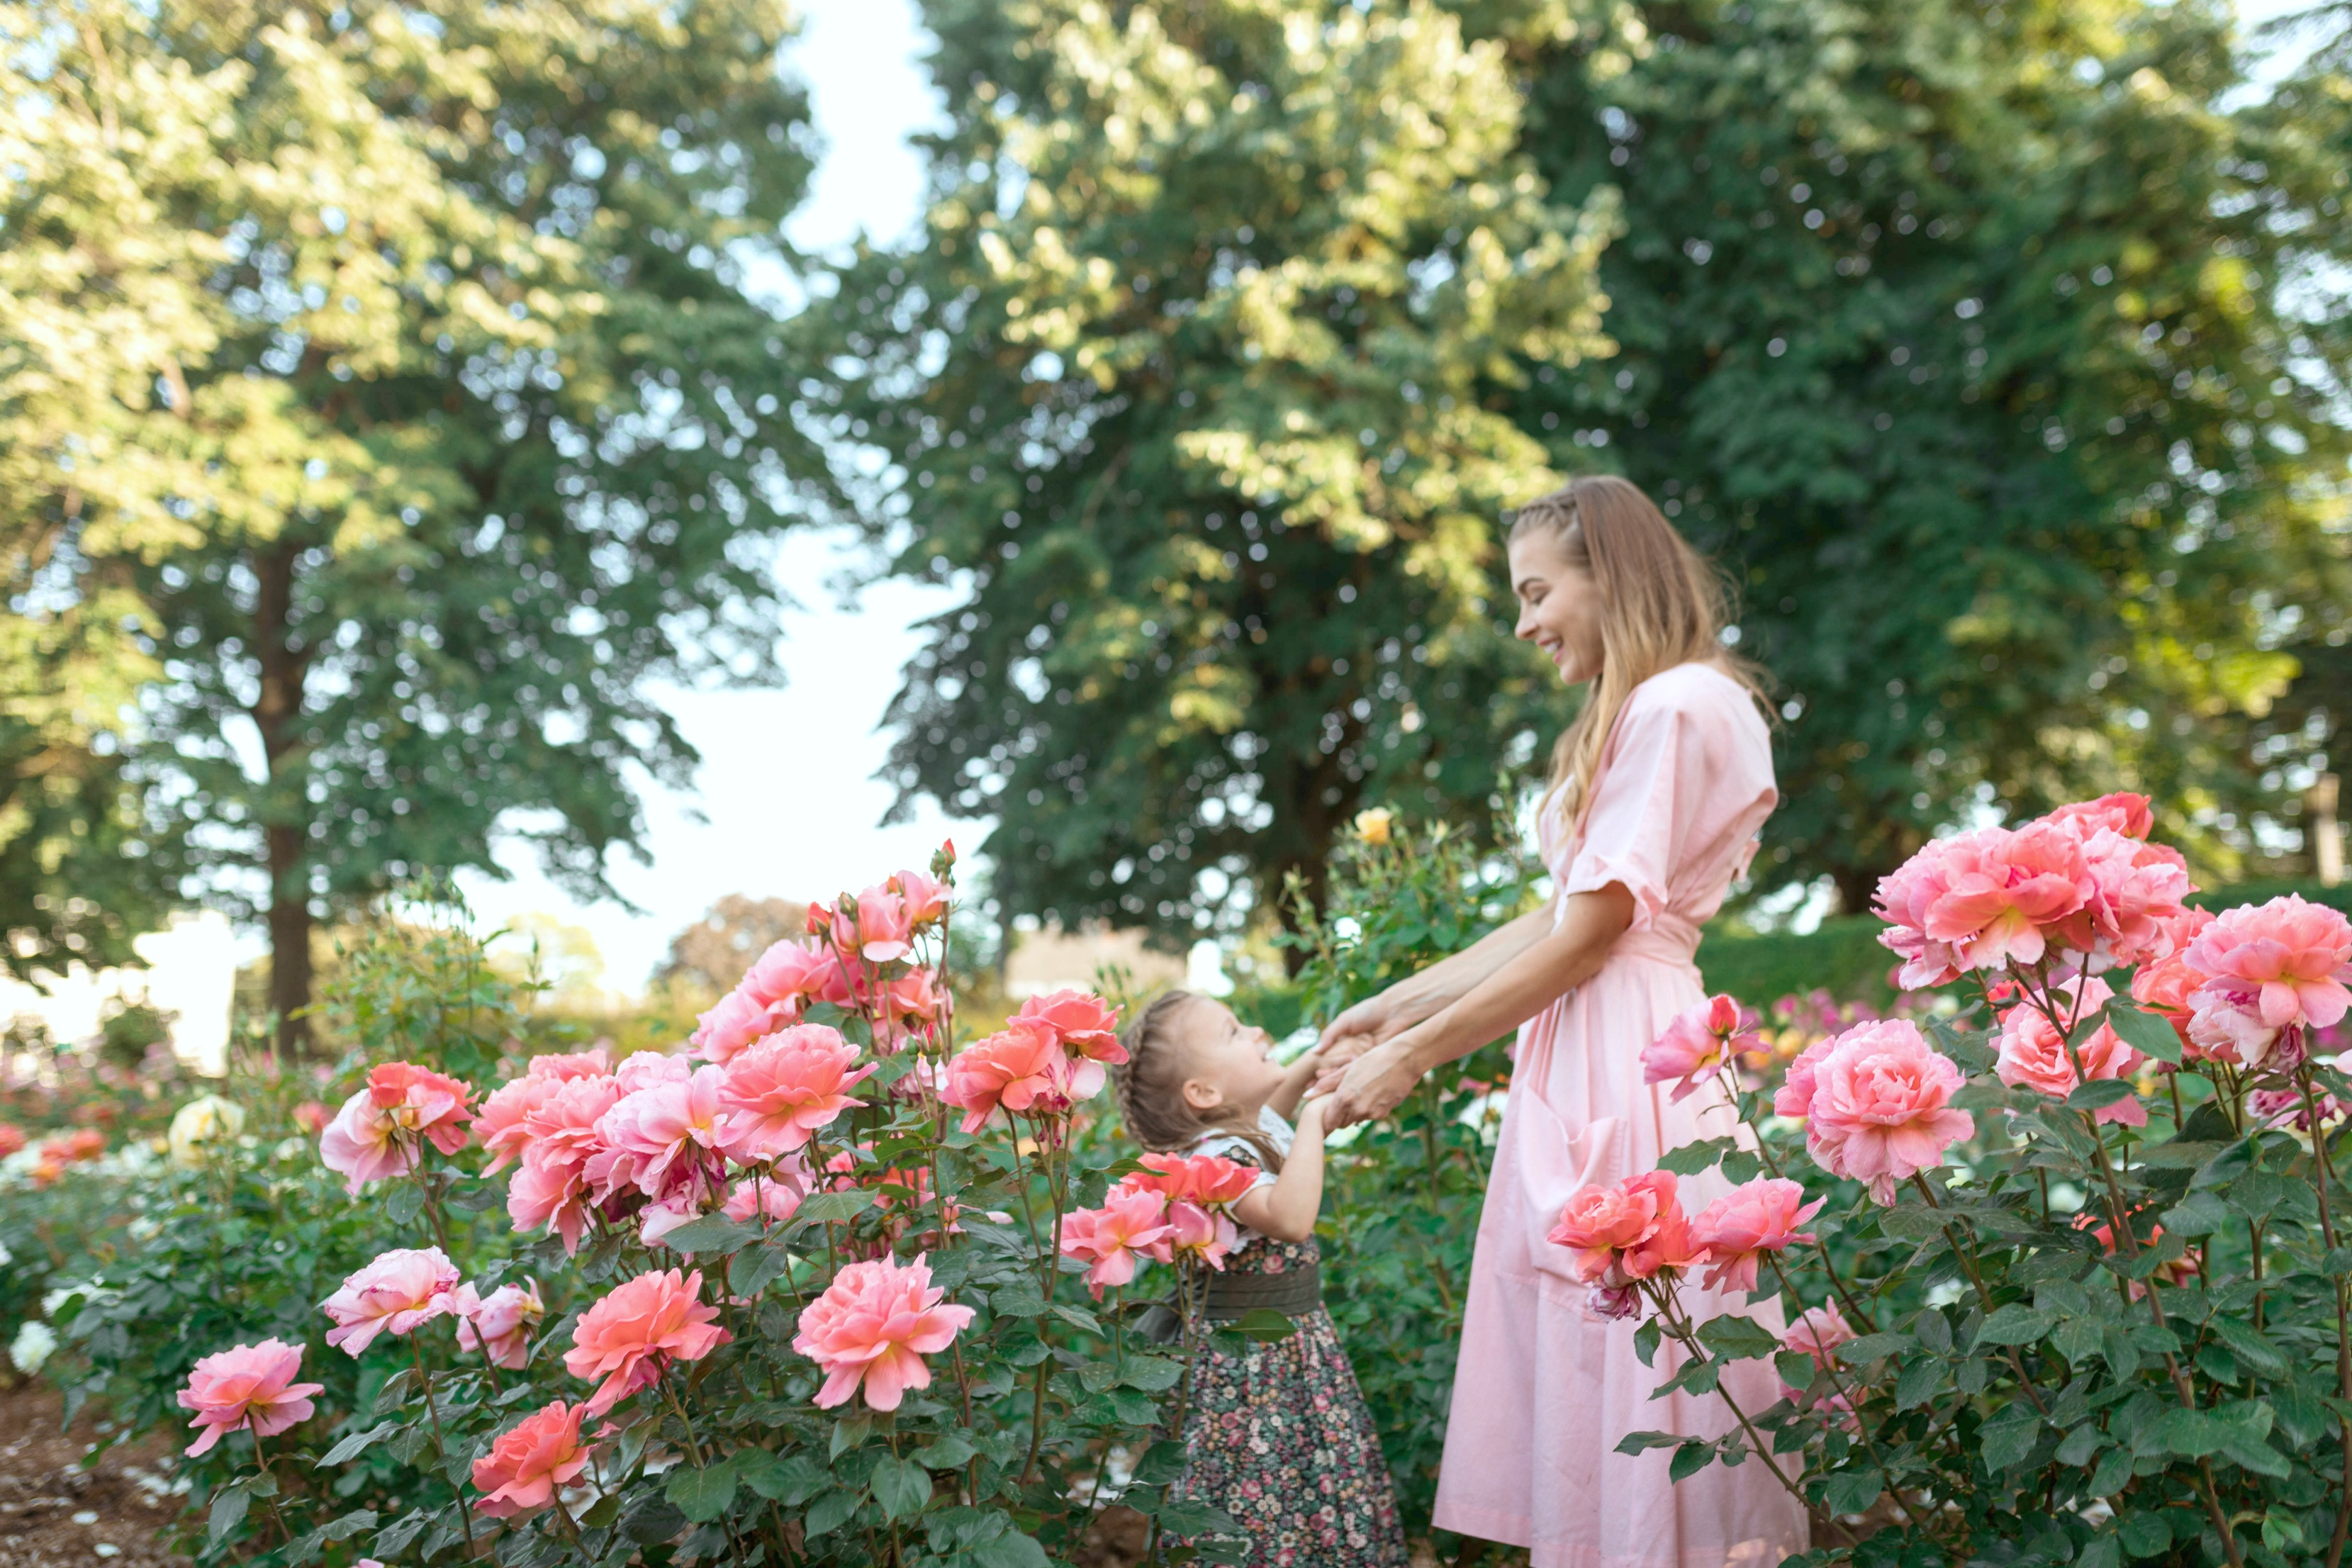 A young mom and her daughter hold hands inside rose bushes while they smile at each other.